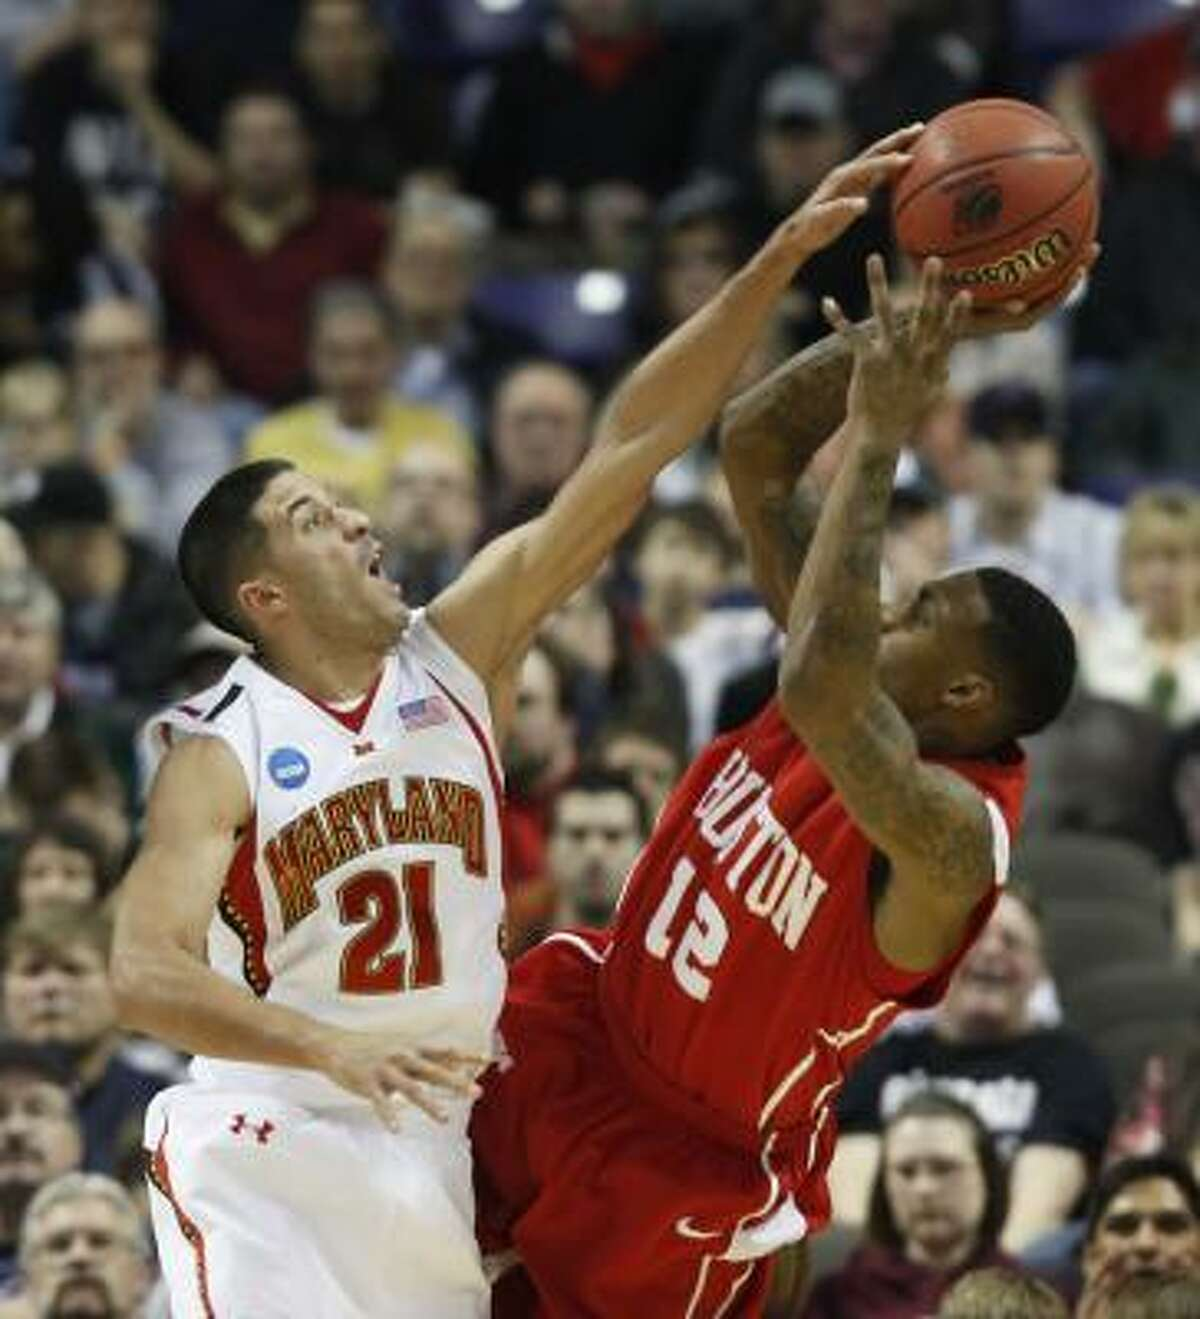 Maryland's Greivis Vasquez tries to block a shot by UH's Aubrey Coleman in the first half.